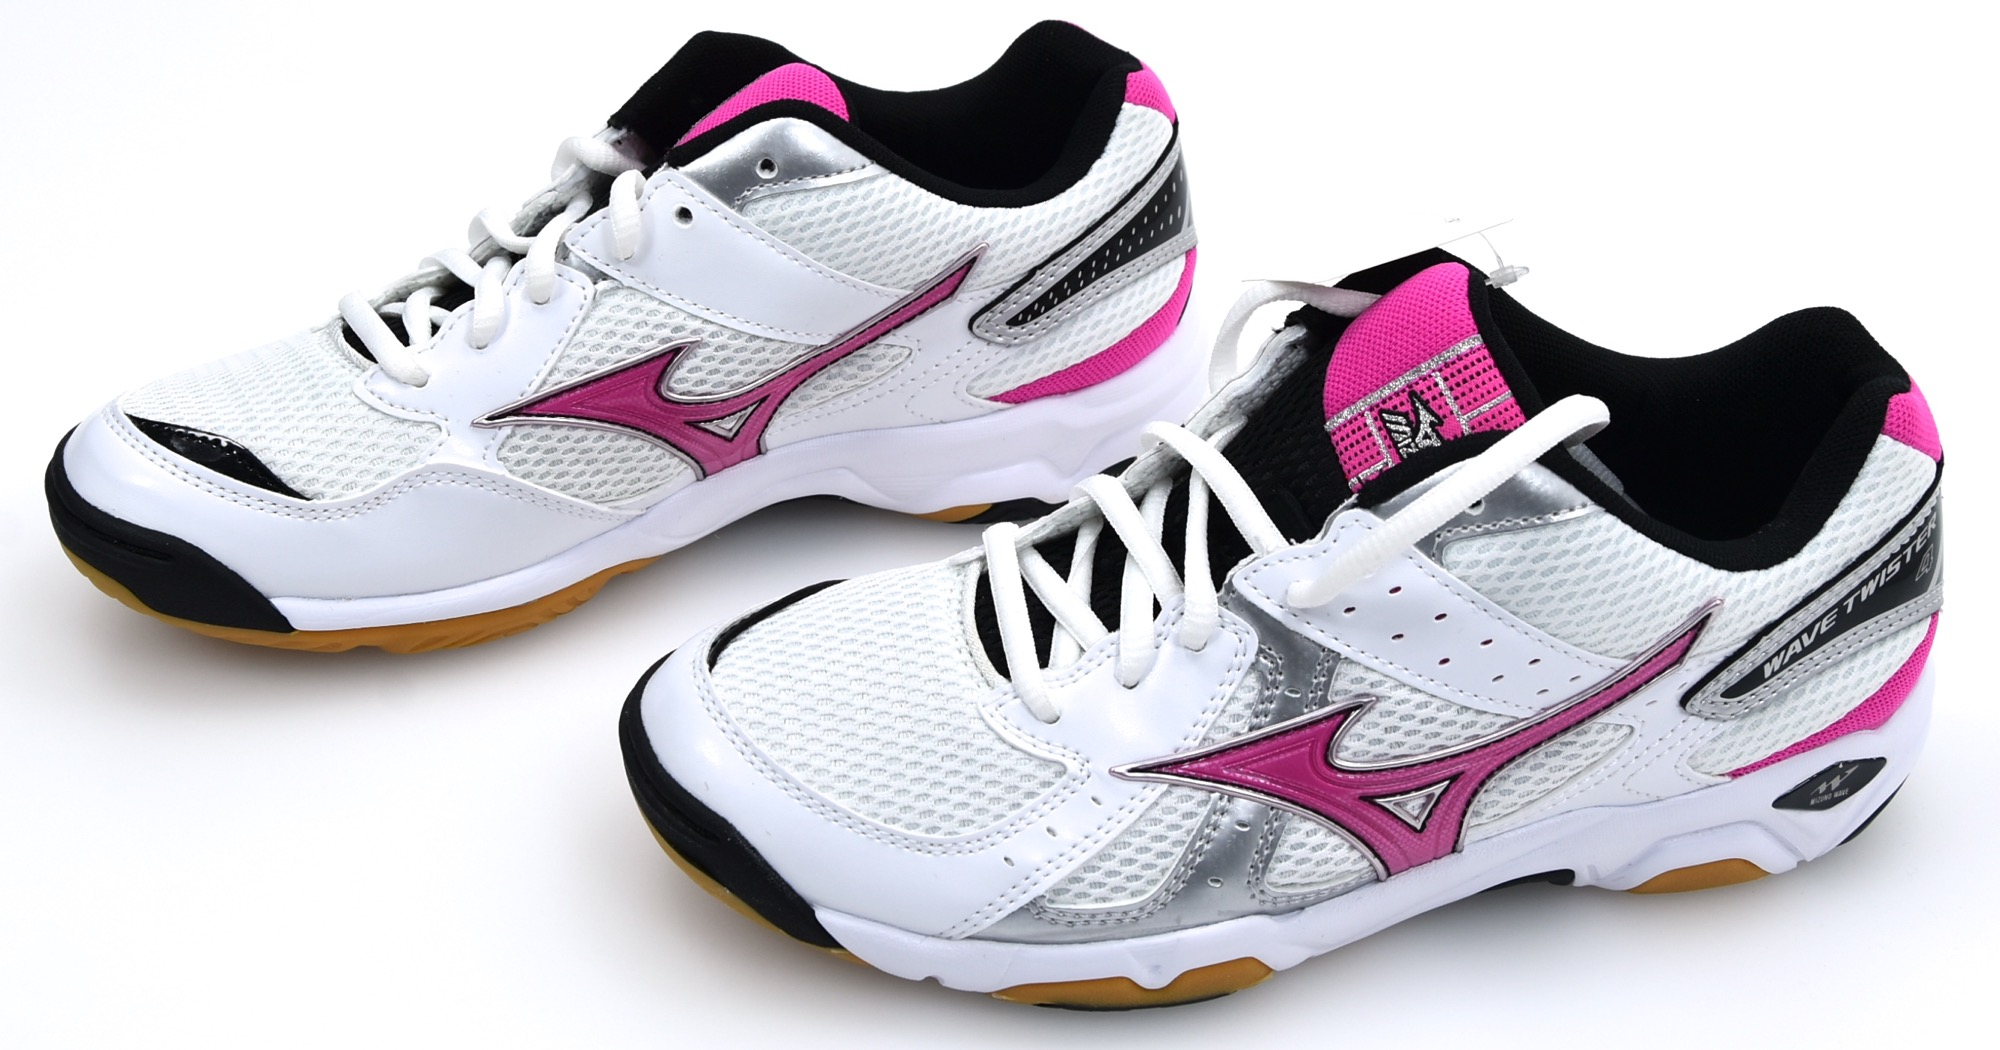 5ab5727745e59 Details about MIZUNO WOMAN VOLLEYBALL SNEAKER SPORTS SHOES ART. V1GC157063 WAVE  TWISTER 4